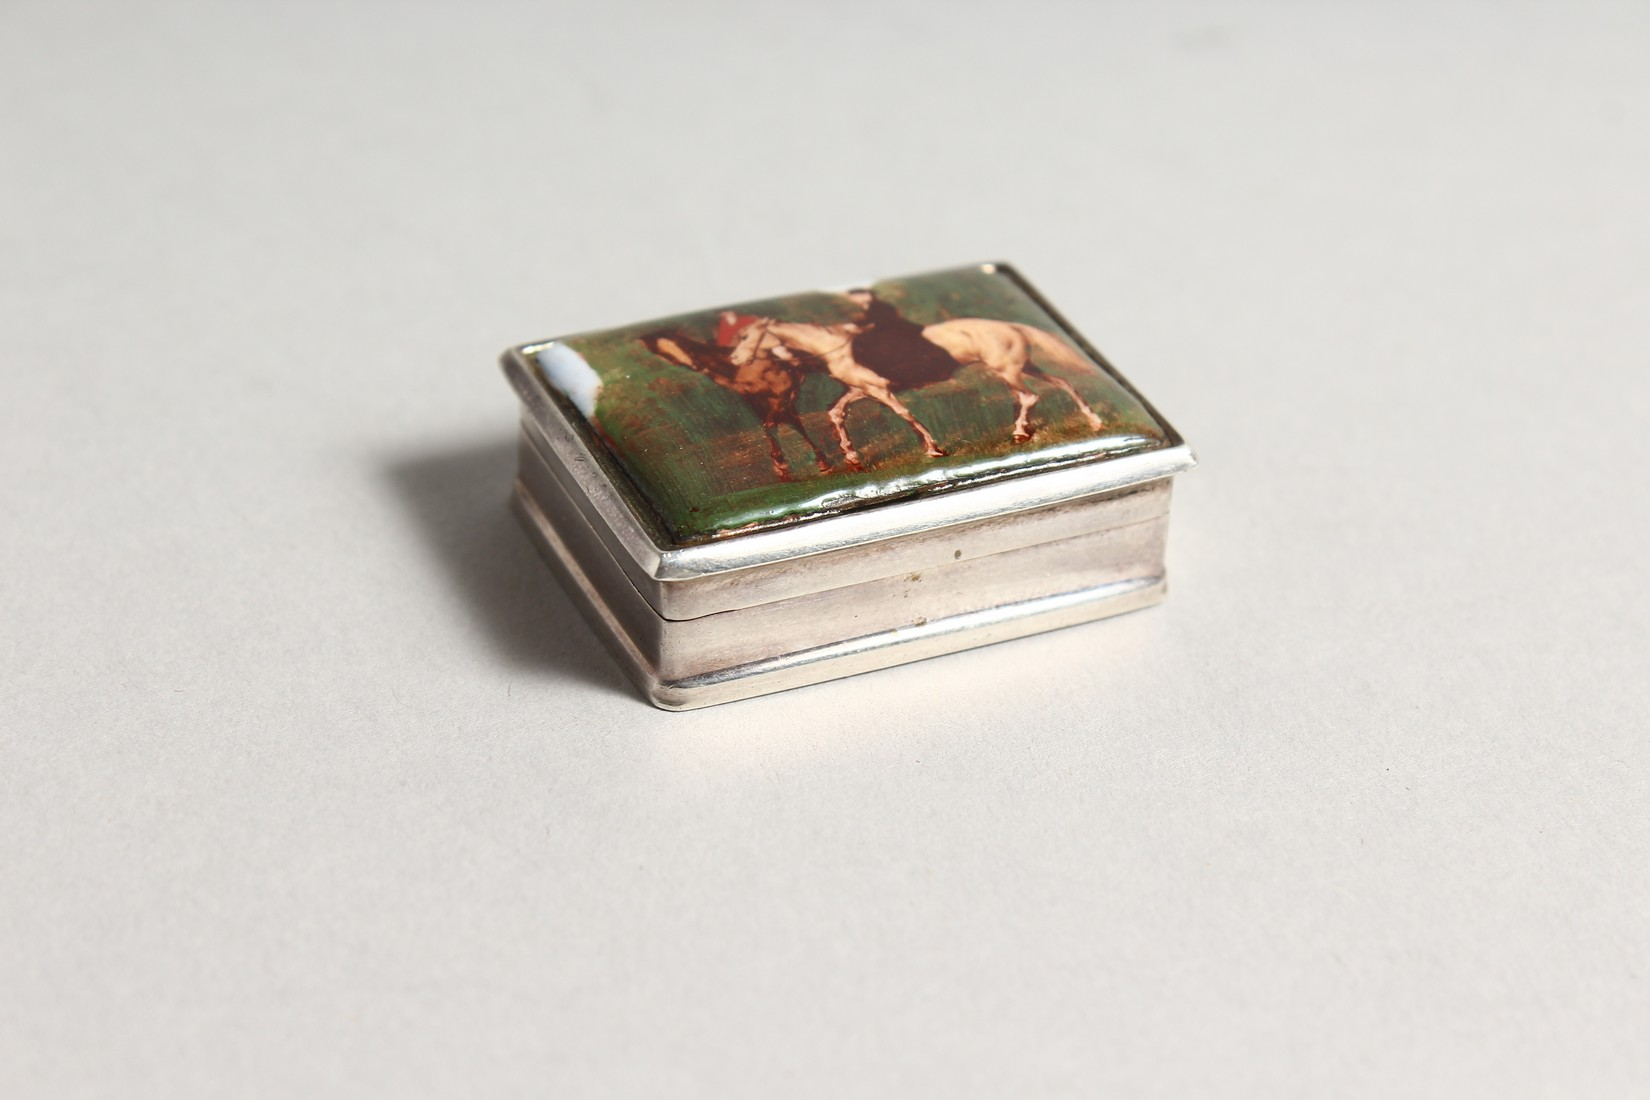 A SILVER AND ENAMEL SNUFF BOX, the lid decorated with figures on horseback. 1.5ins wide - Image 2 of 6